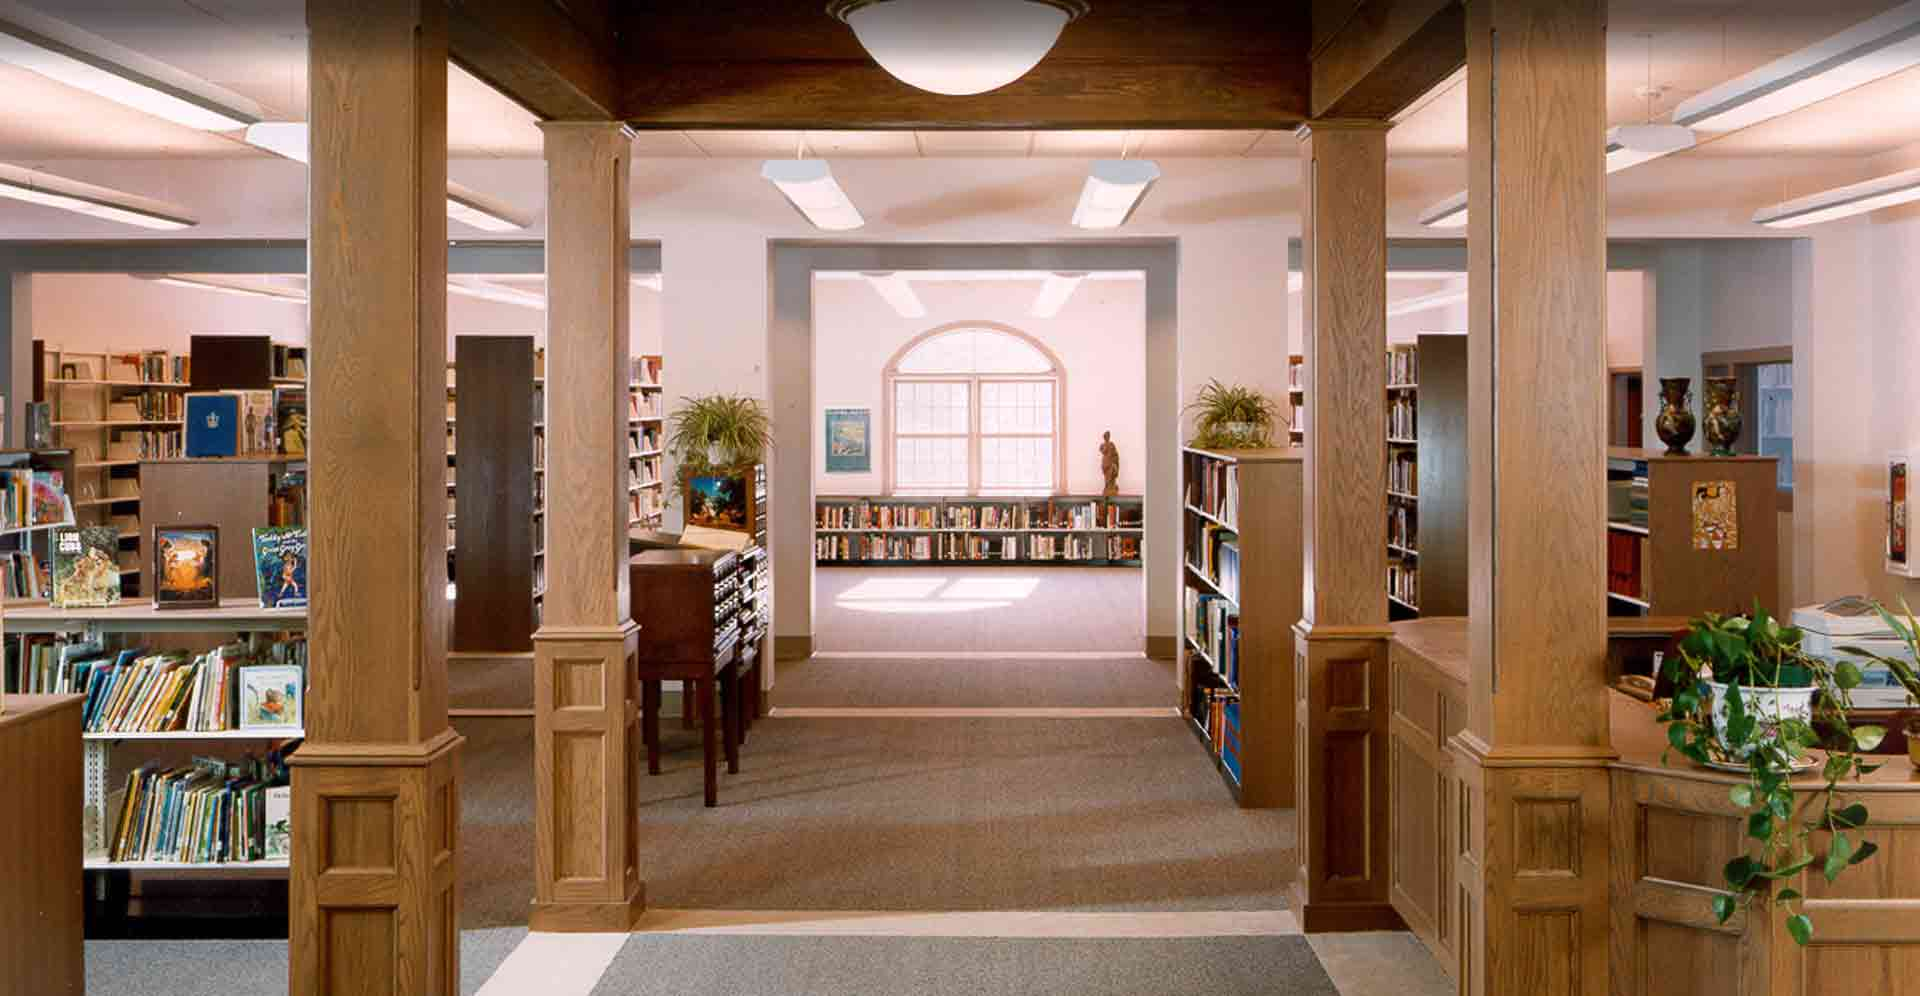 CHAPLIN-LIBRARY-AND-SENIOR-CENTER-RECEPTION-DESK.jpg